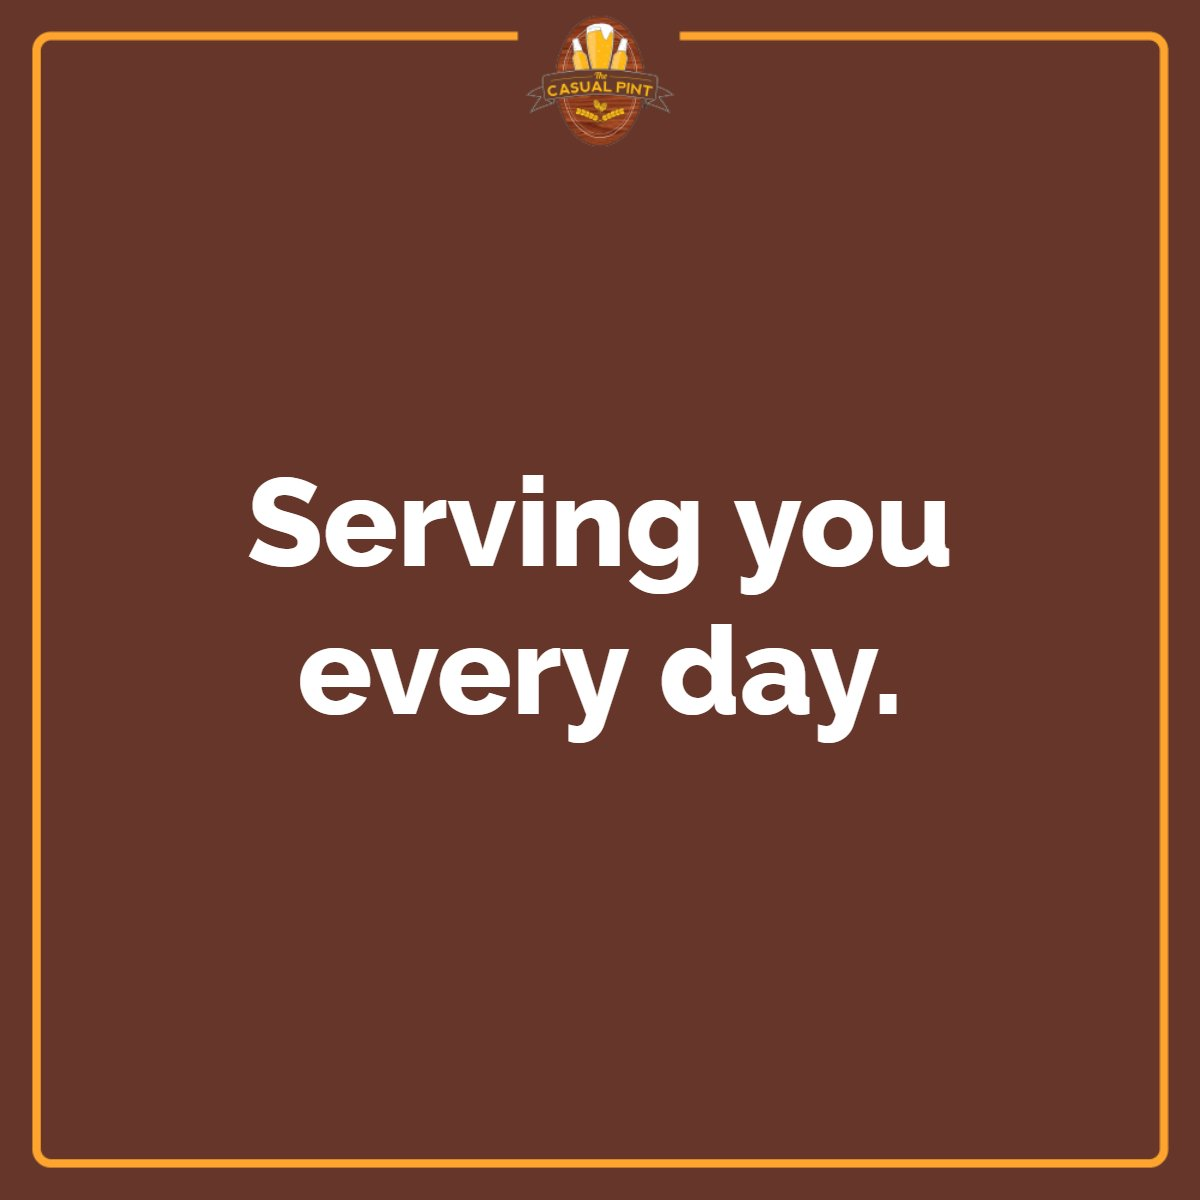 Hunger doesn't take the weekend off, and neither do we! Visit us Monday through Thursday from noon to 10 PM, Friday and Saturday from 11 AM to midnight, and Sunday from 11 AM to 10 PM. #TheCasualPintVaBeach #MilitaryDiscount #ServiceIndustryDiscount #WhereBeerLoversMeet